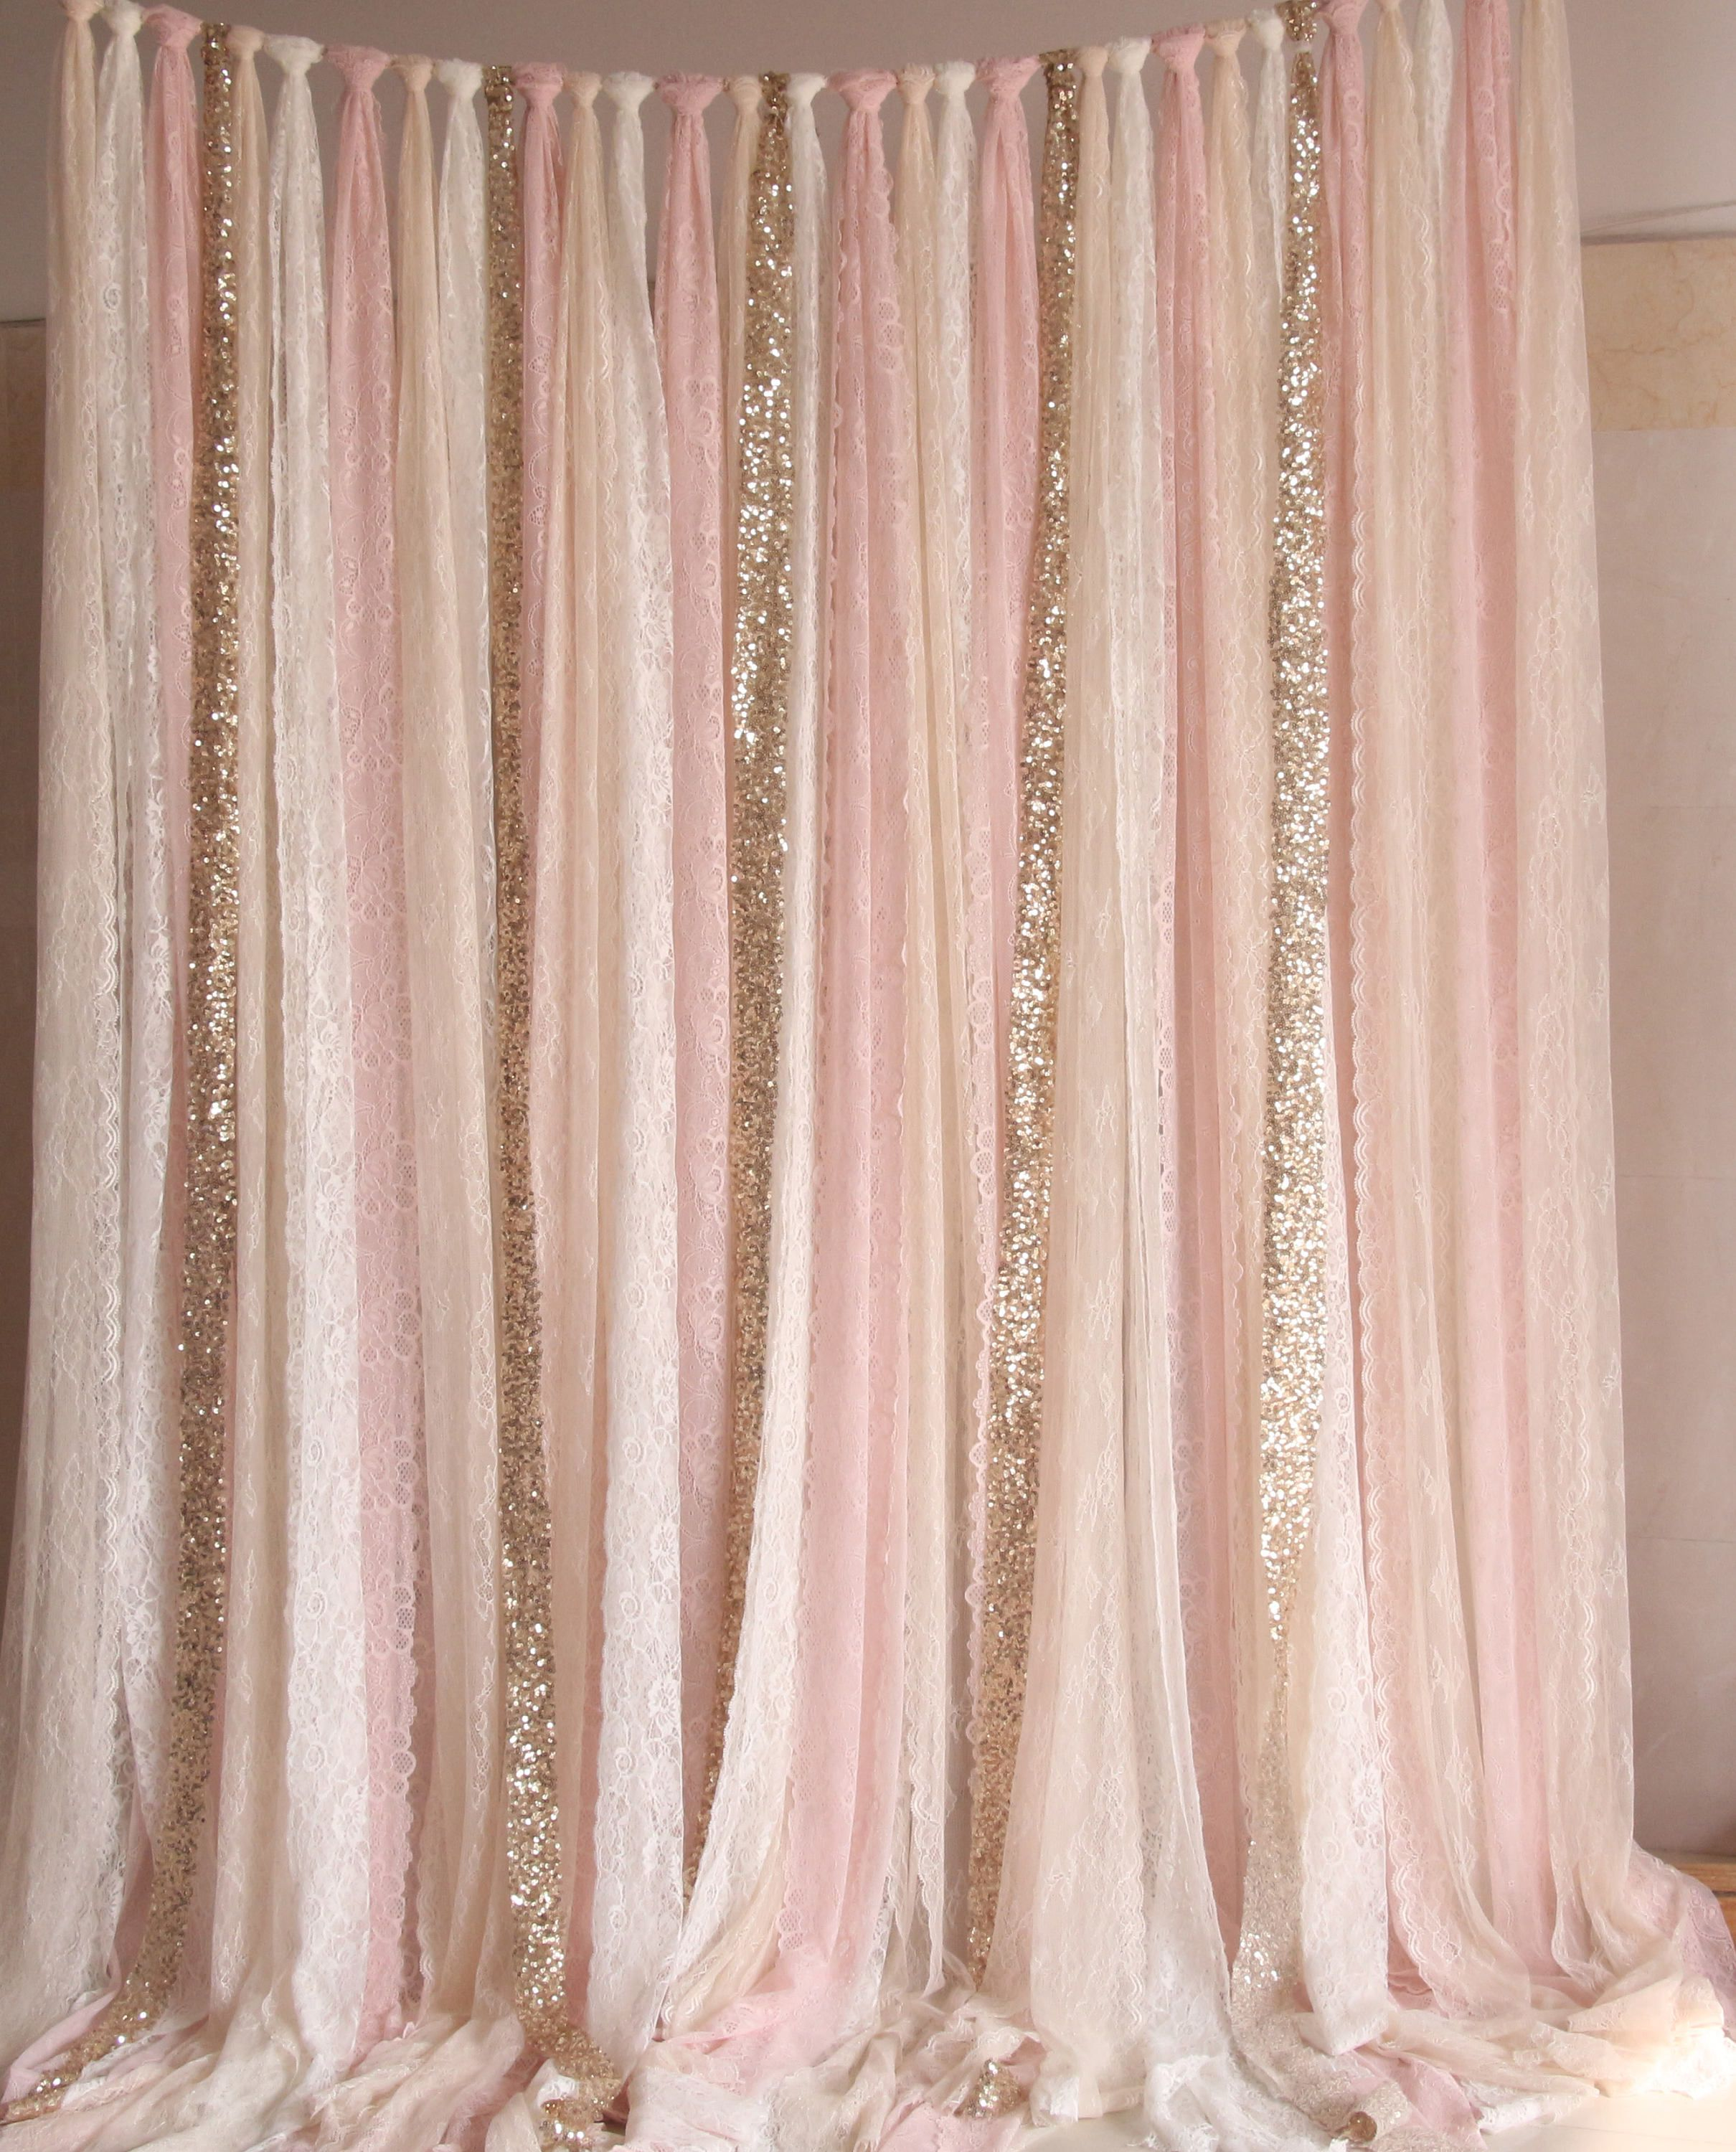 Blush pink white Lace fabric Gold Sparkle photobooth backdrop ...